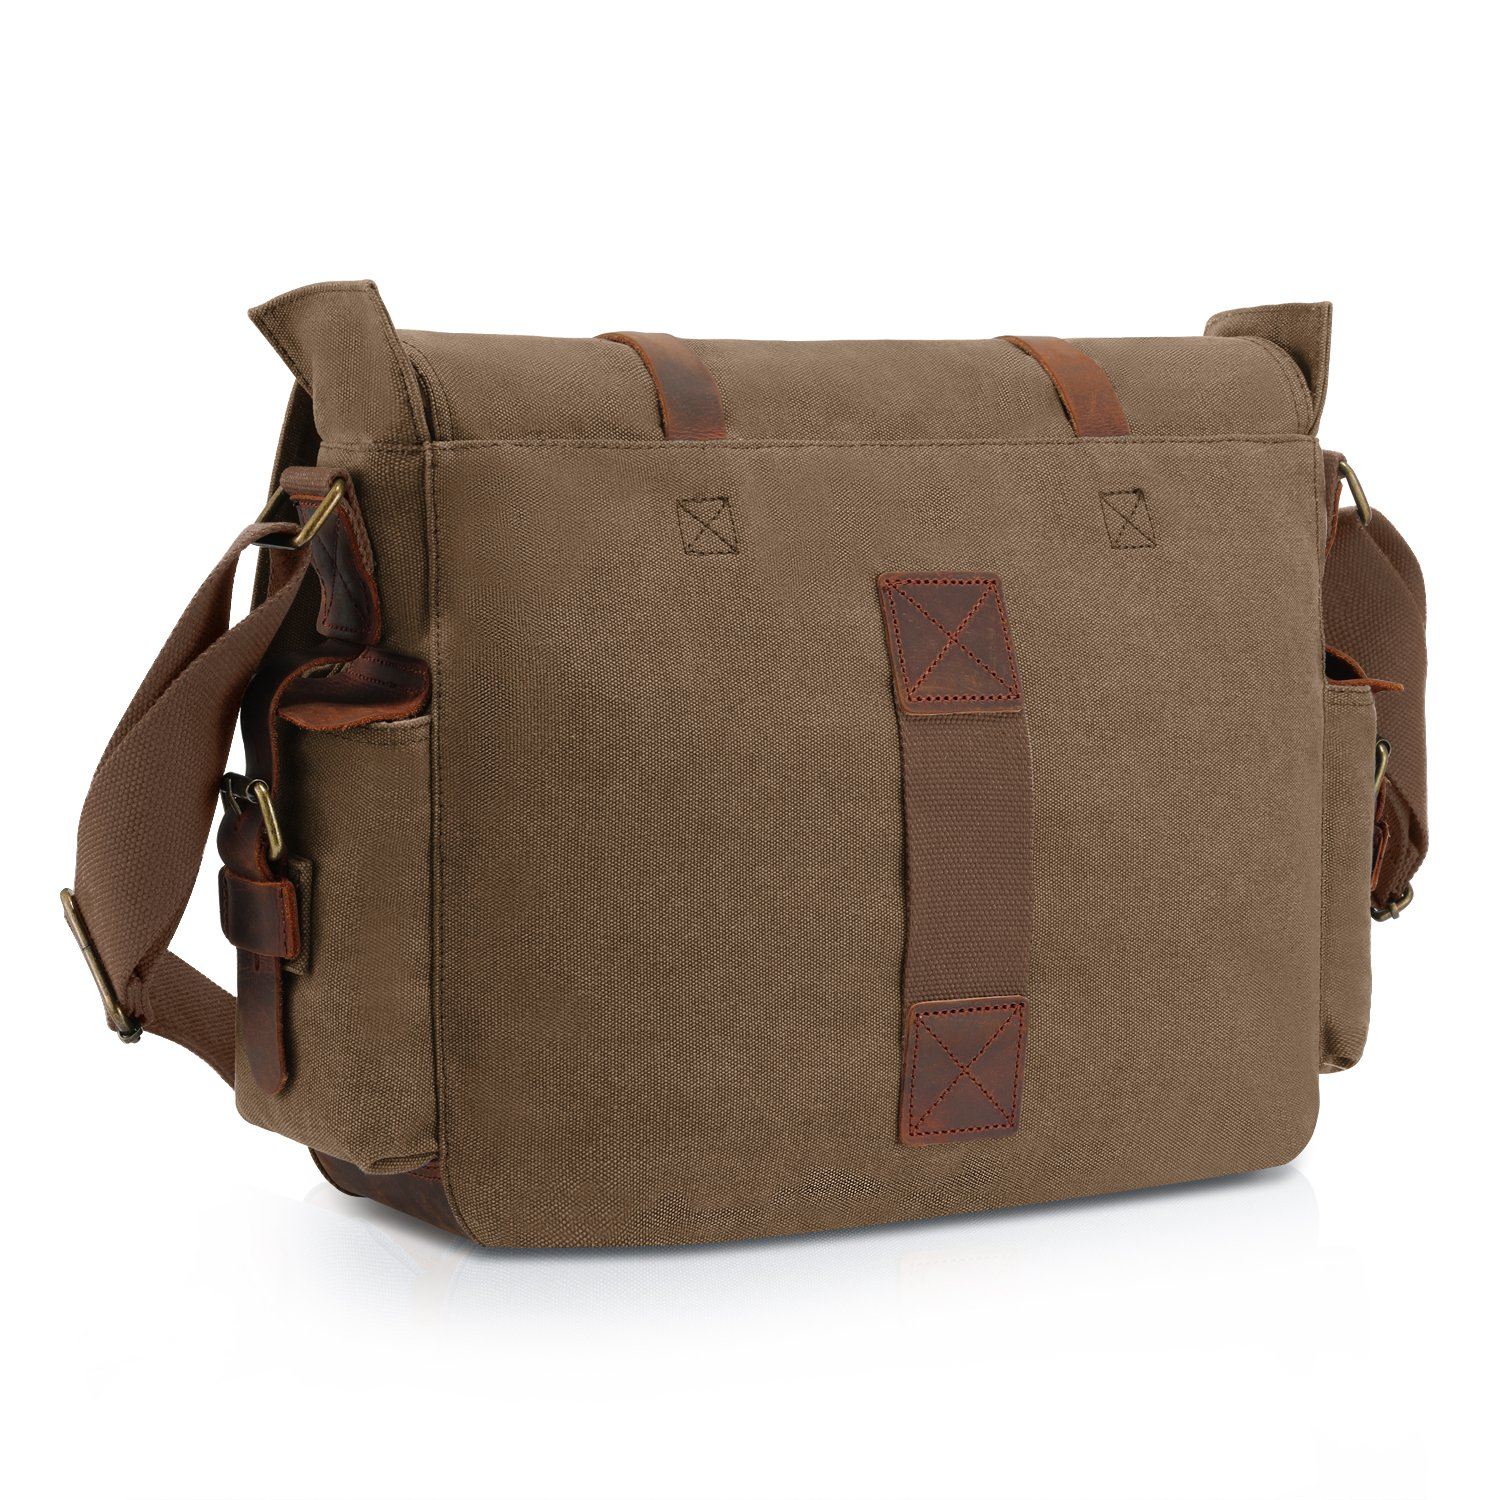 a2cf2ec54a Kattee Classic Military Canvas Shoulder Messenger Bag Leather Straps Fit 16  inch Laptop (Coffee)  Amazon.ca  Luggage   Bags